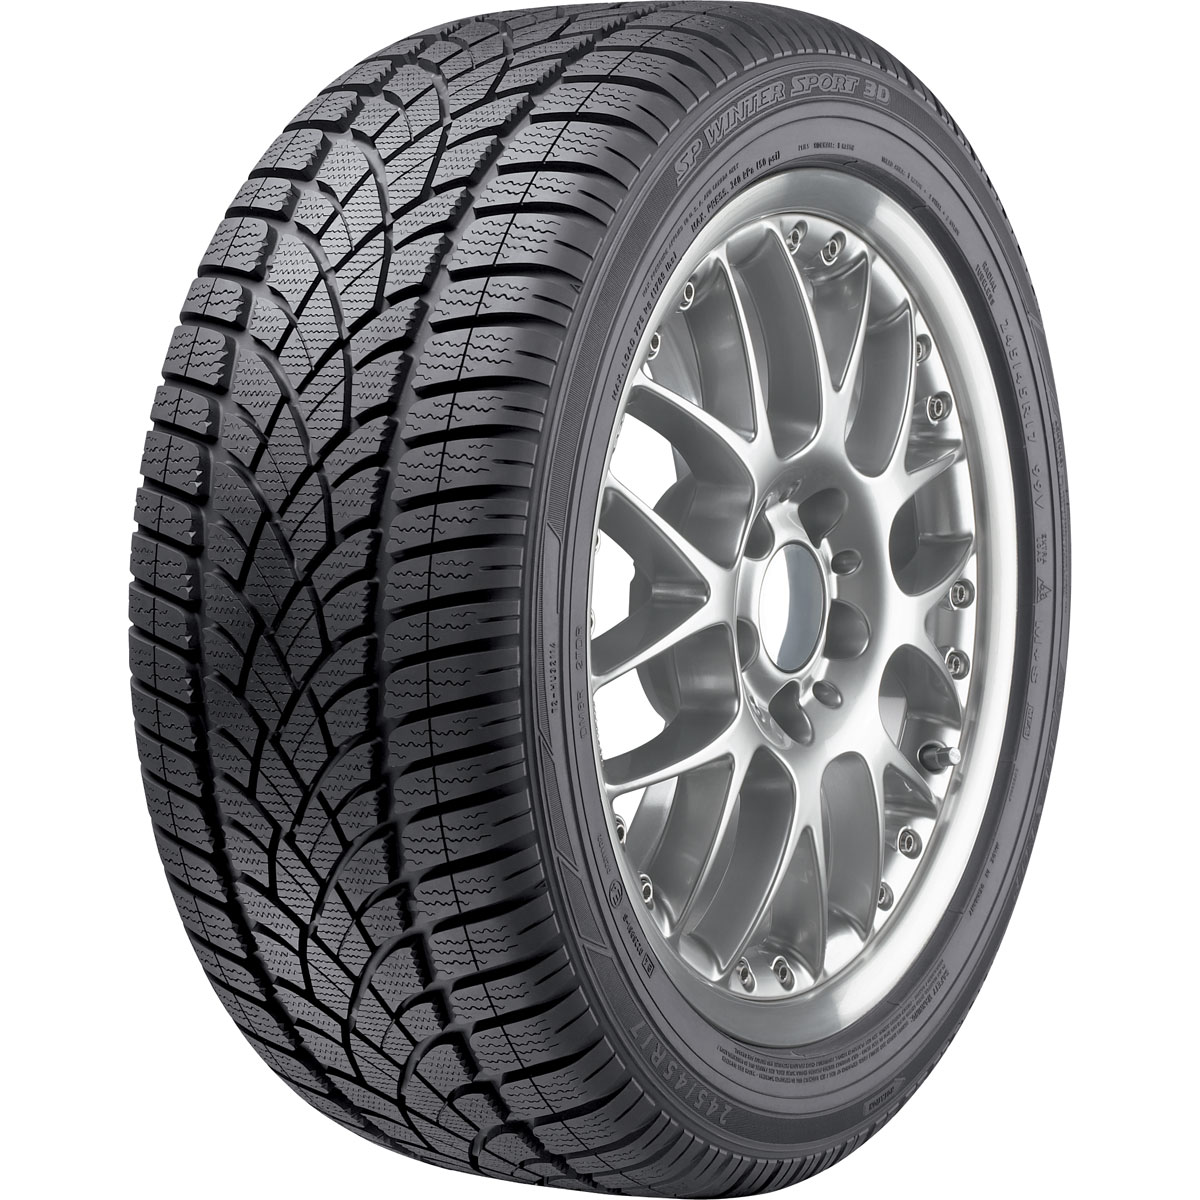 Anvelopa iarna DUNLOP SP WINTERSPORT 3D XL 255/55 R18 109V